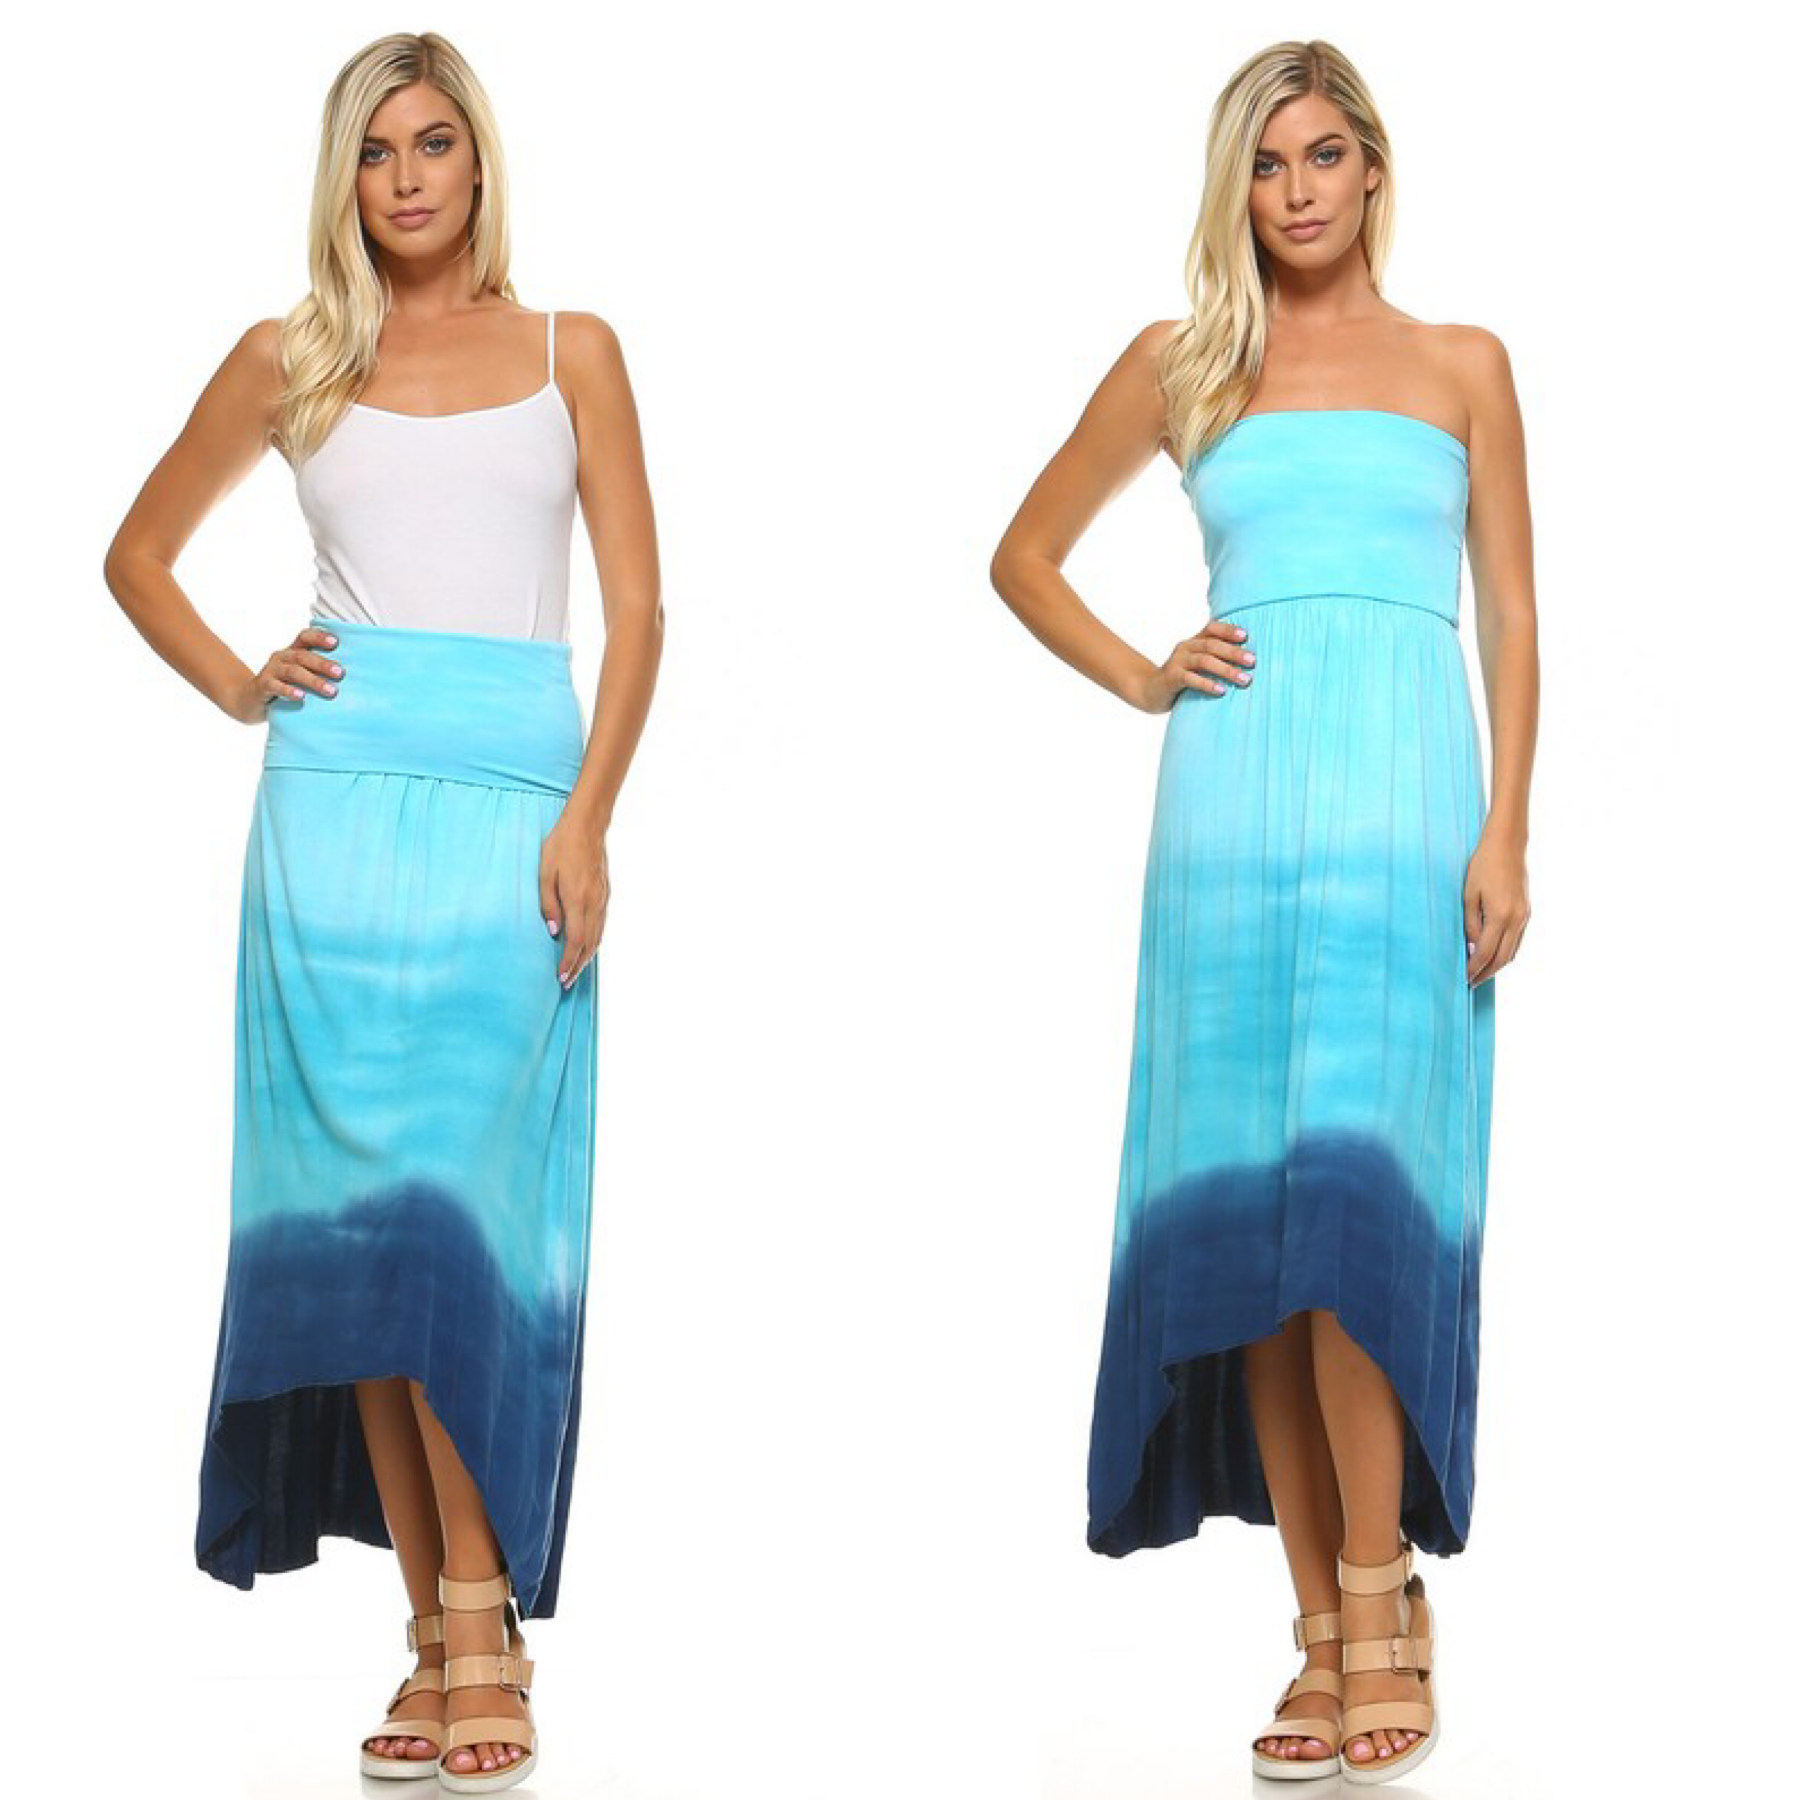 Ombre Tie Dye Dress/ Skirt